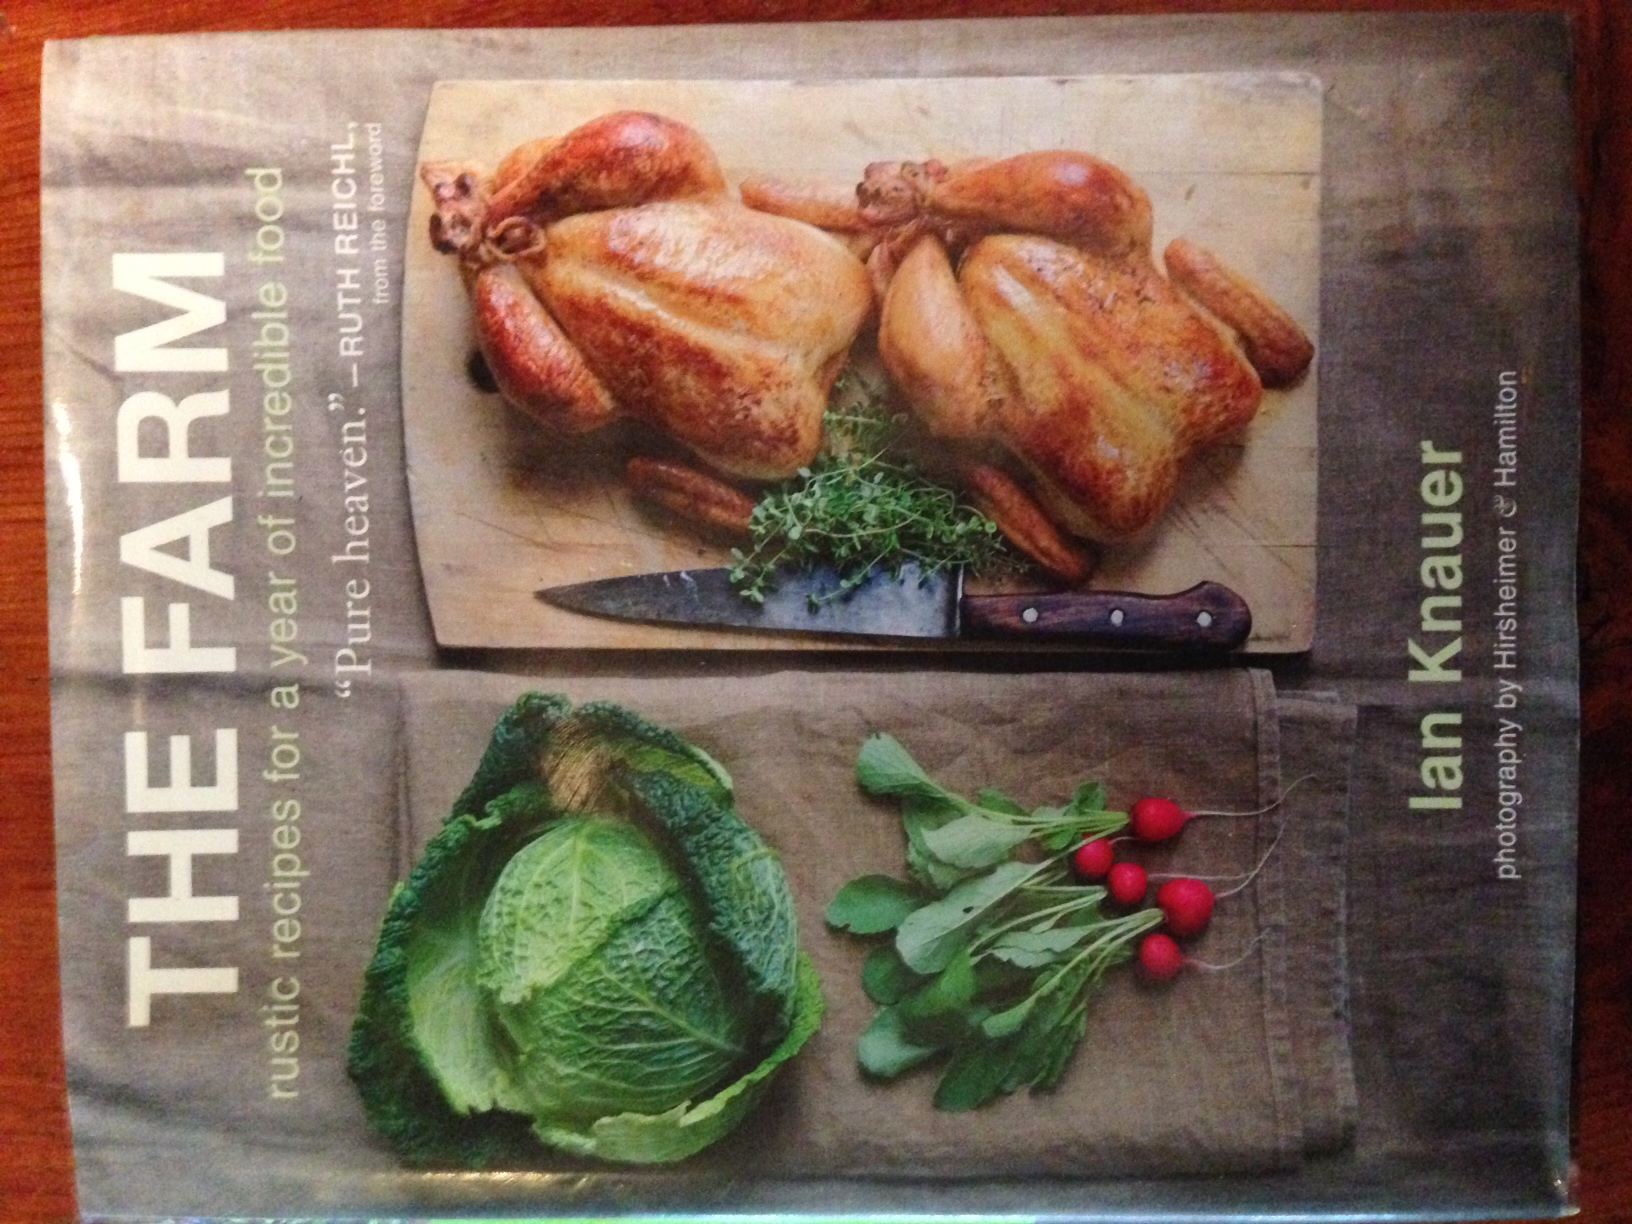 If you grow food, buy this book